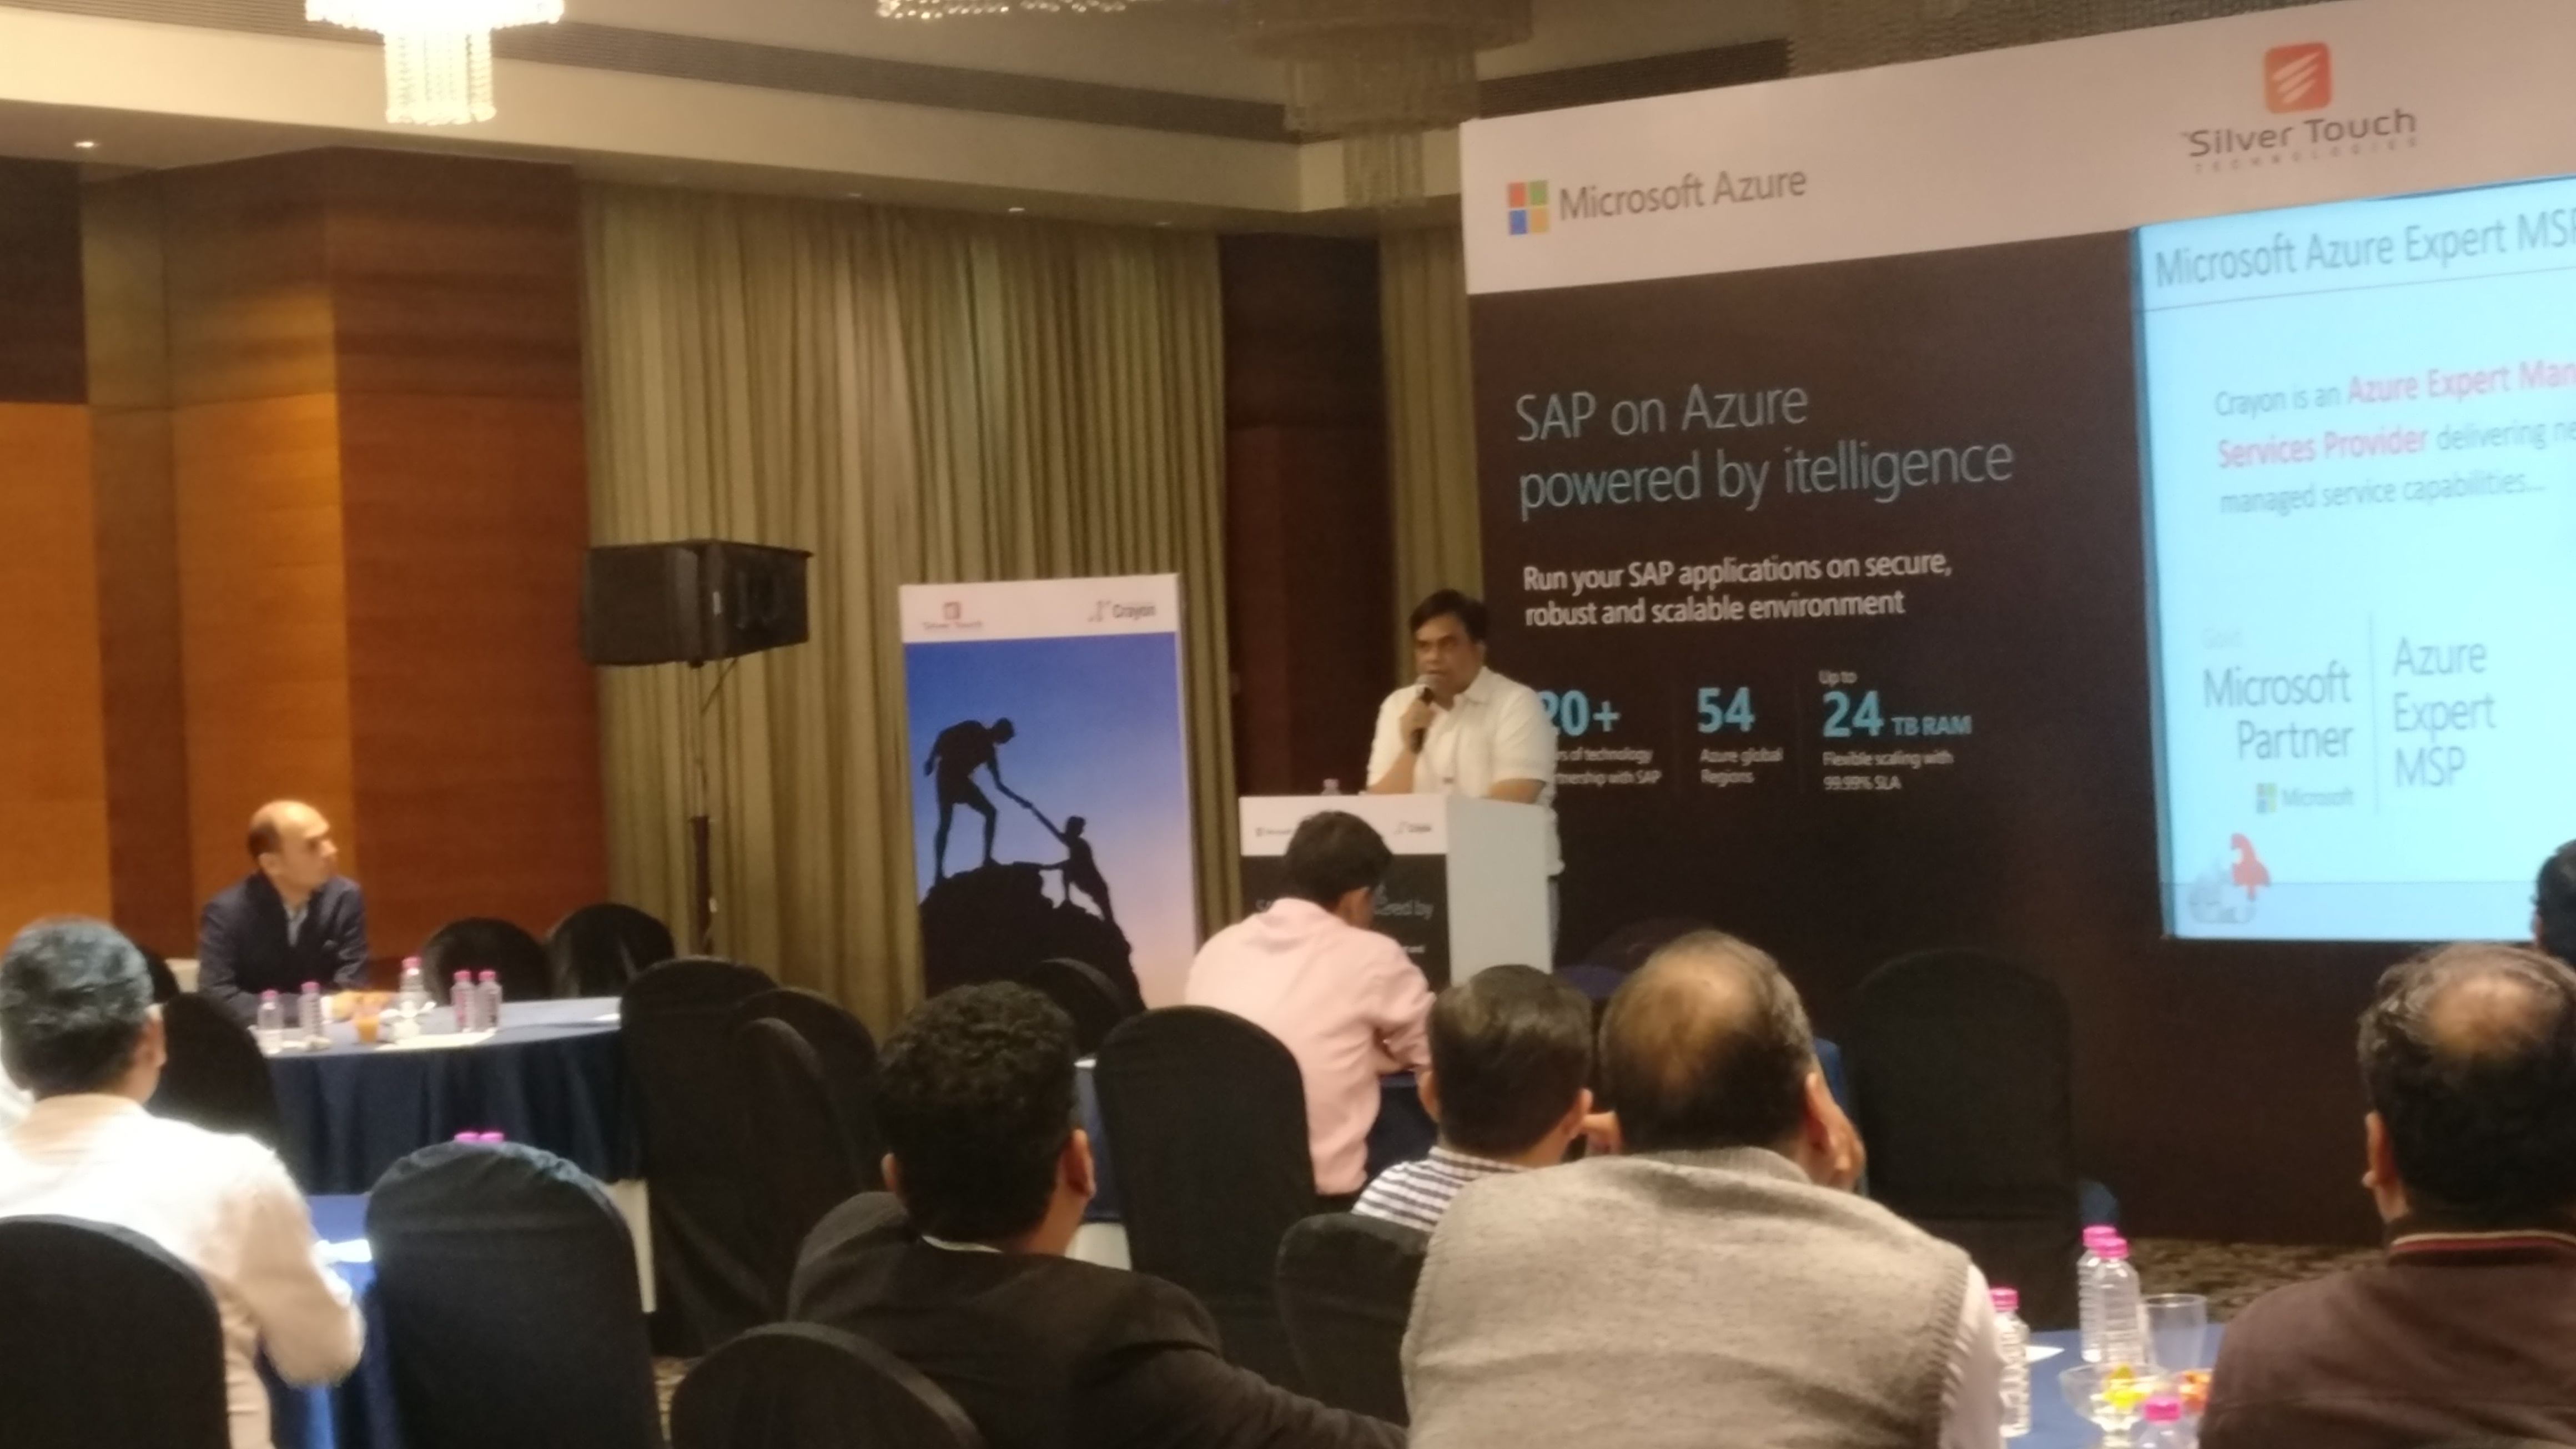 Silver Touch, Microsoft & Crayon jointly organised an event - SAP on Azure Experts